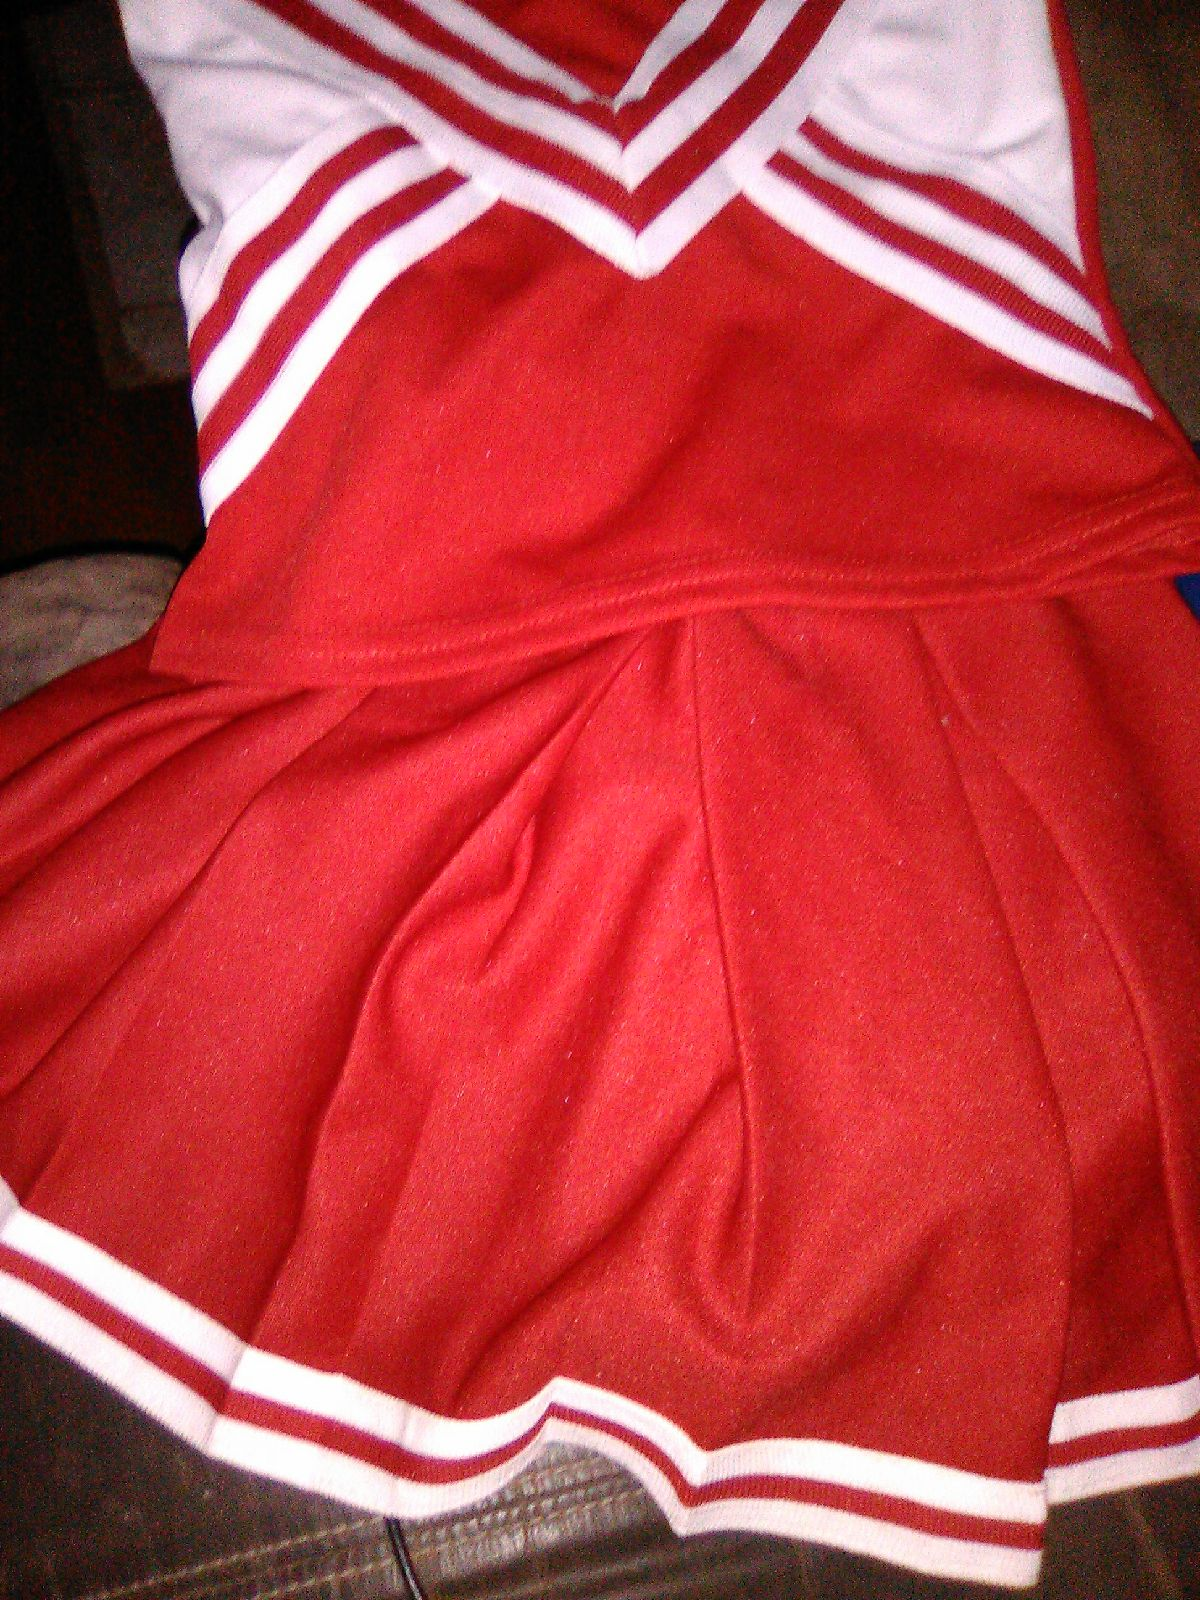 Halloween Costume Cheer Leading Outfit